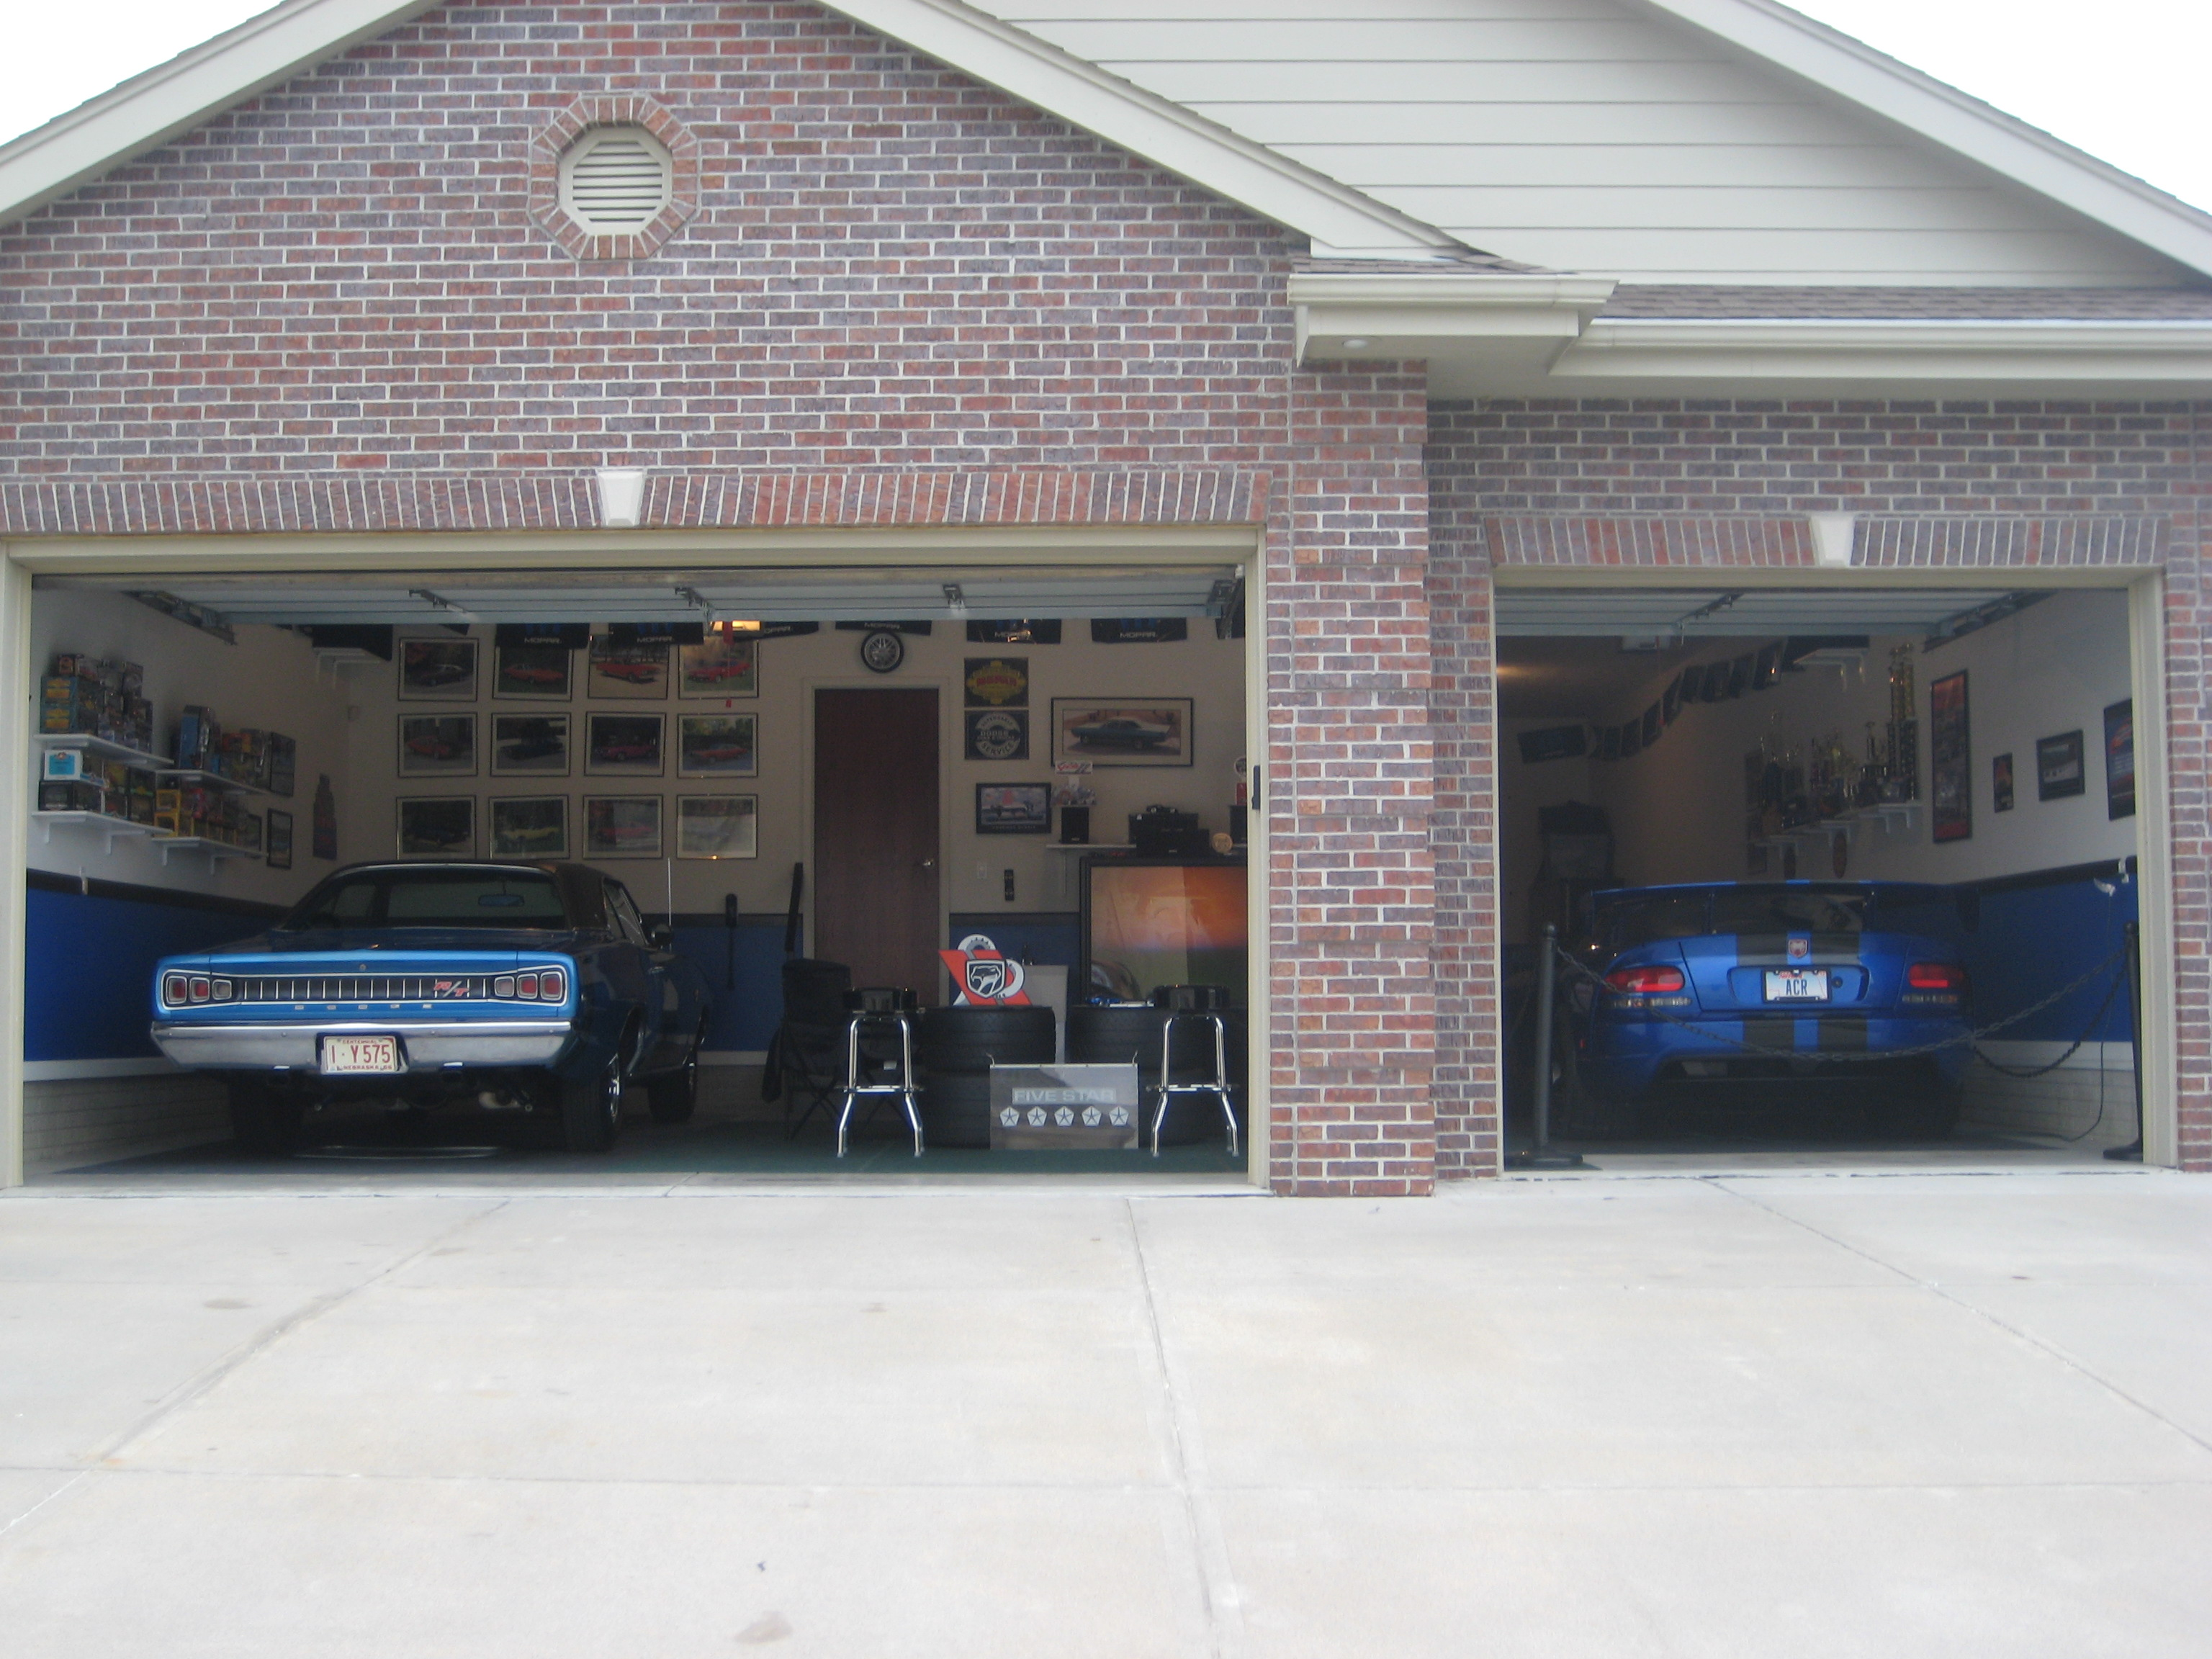 Man Cave Garage Art : Mopar garage man cave